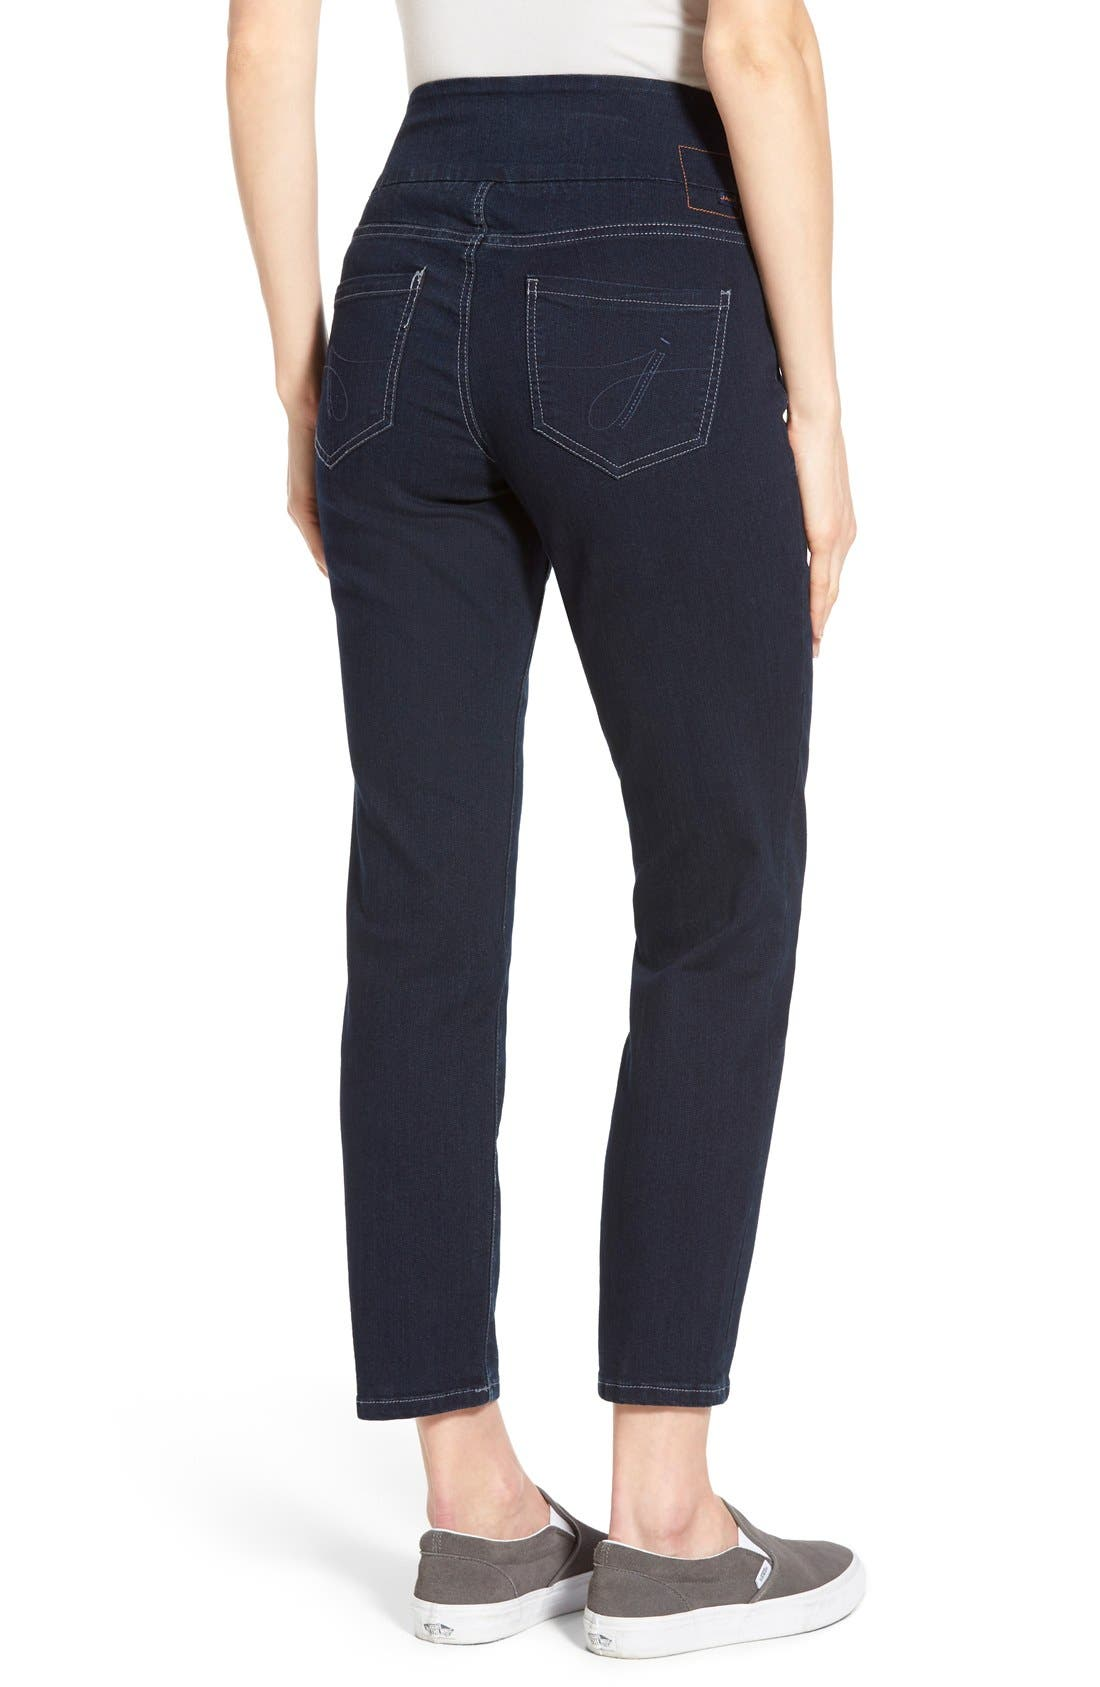 'Amelia' Pull-On Slim Ankle Jeans,                             Alternate thumbnail 2, color,                             Indigo